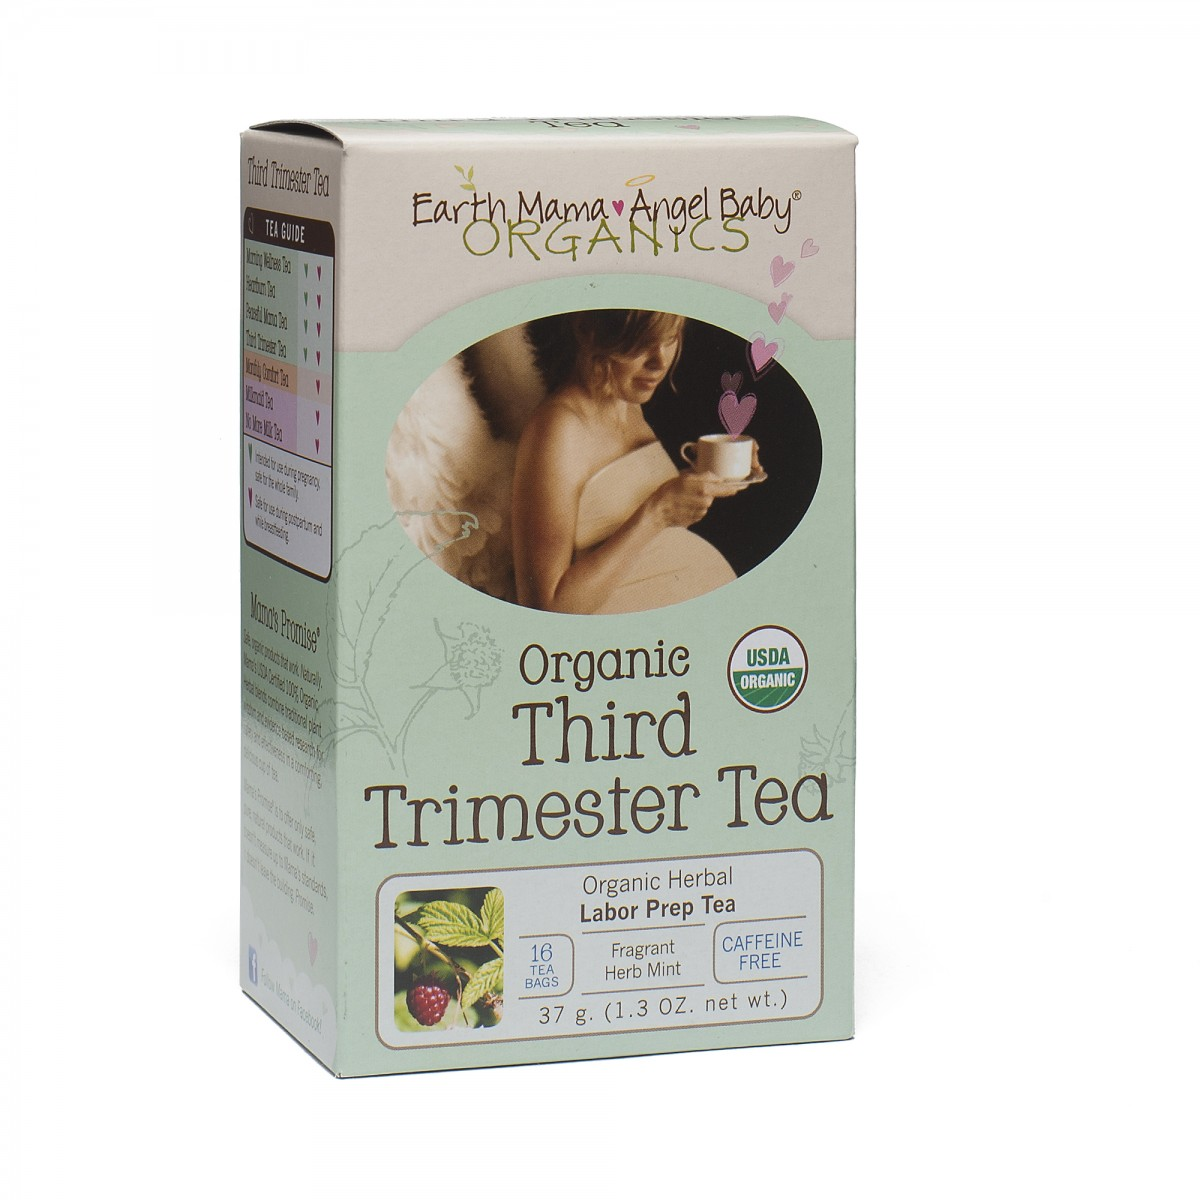 Third trimester tea organic by earth mama angel baby for Gardening 3rd trimester